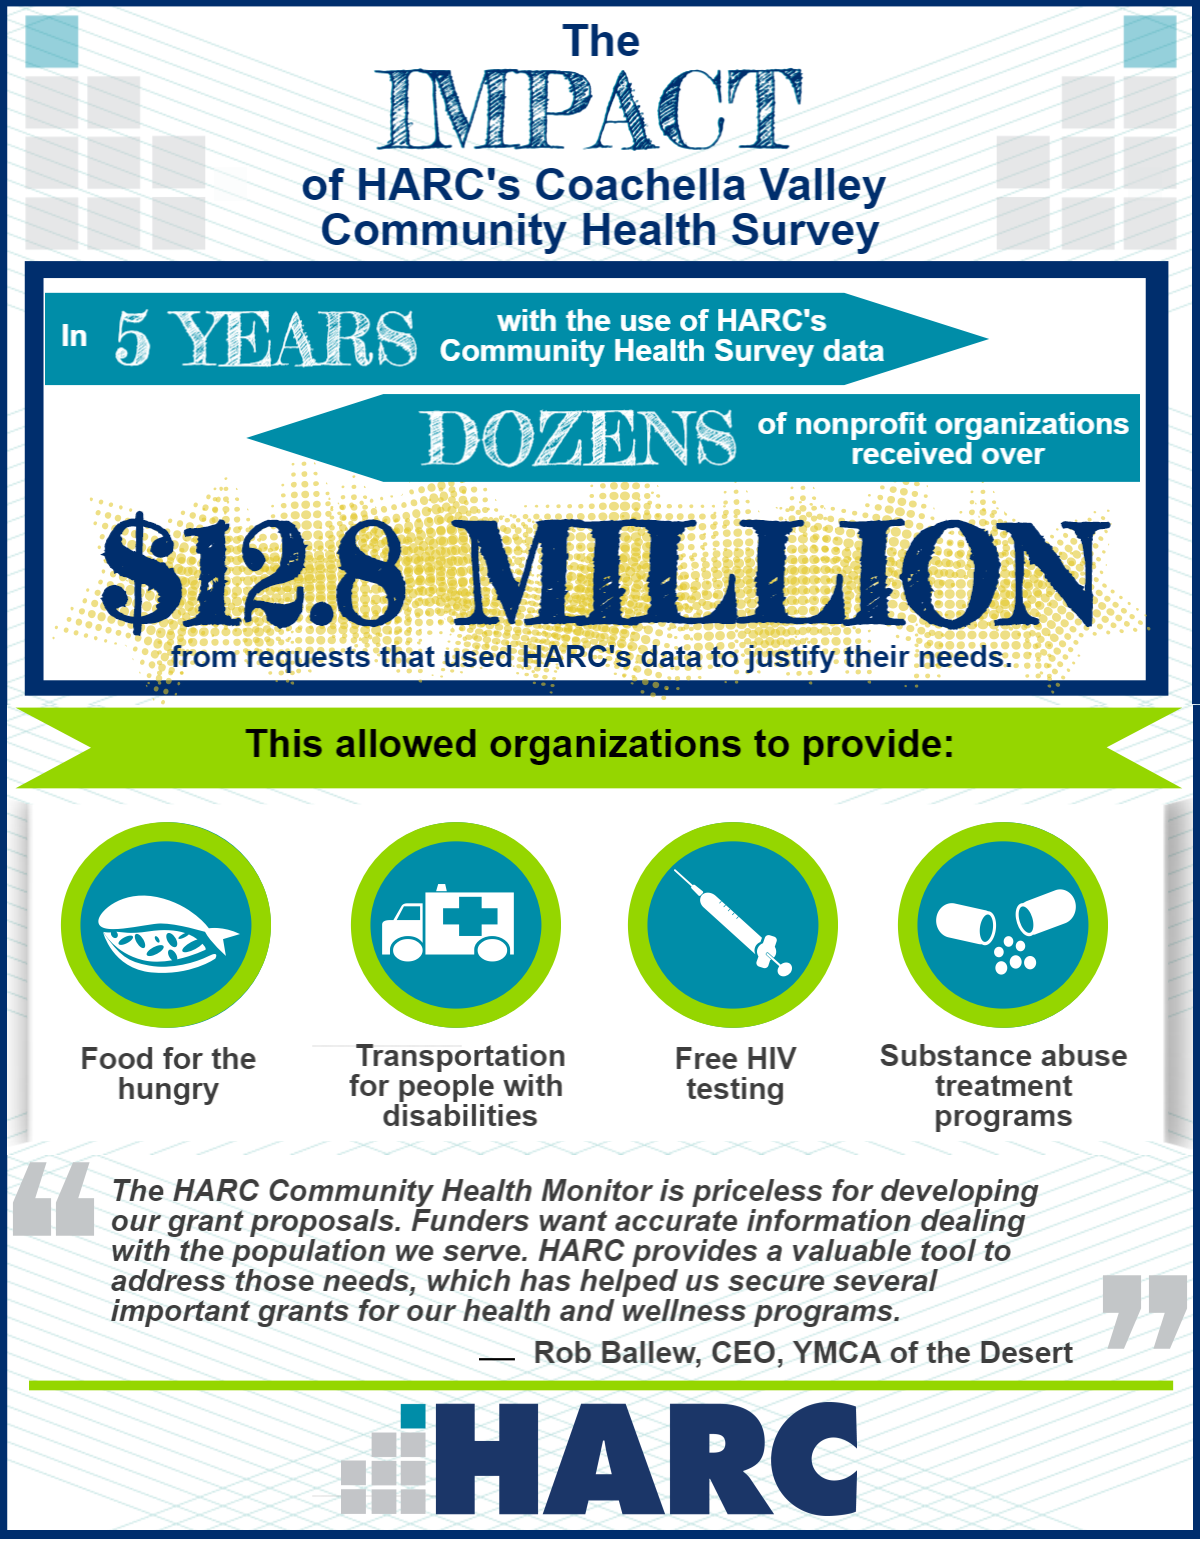 The impact of HARC's Coachella Valley Community Health Survey infographic